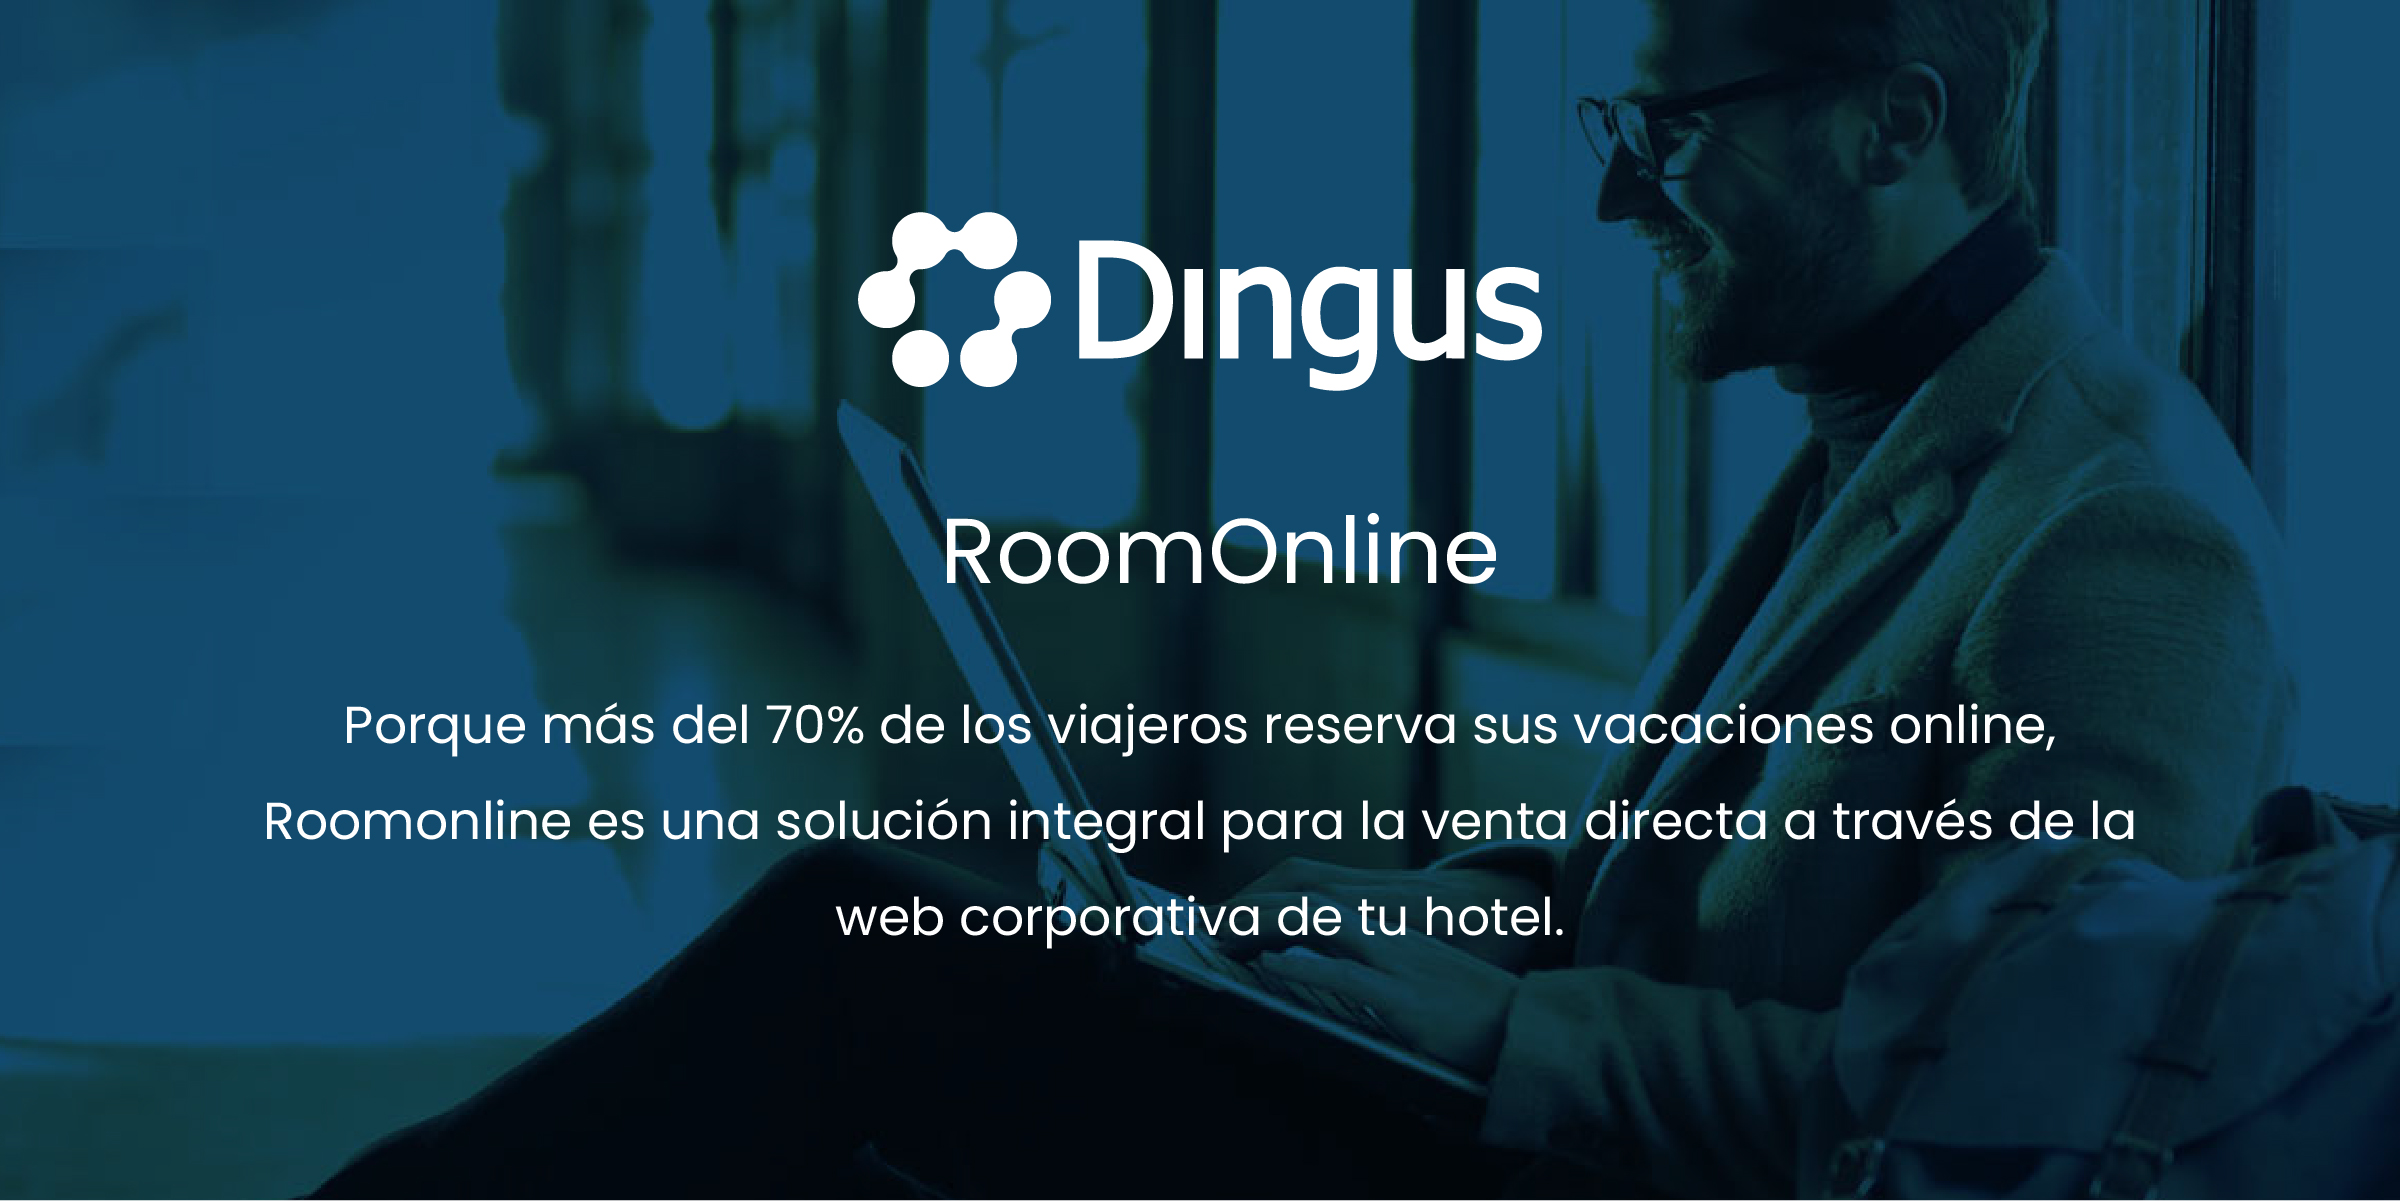 The new version of Roomonline by Dingus only brings advantages